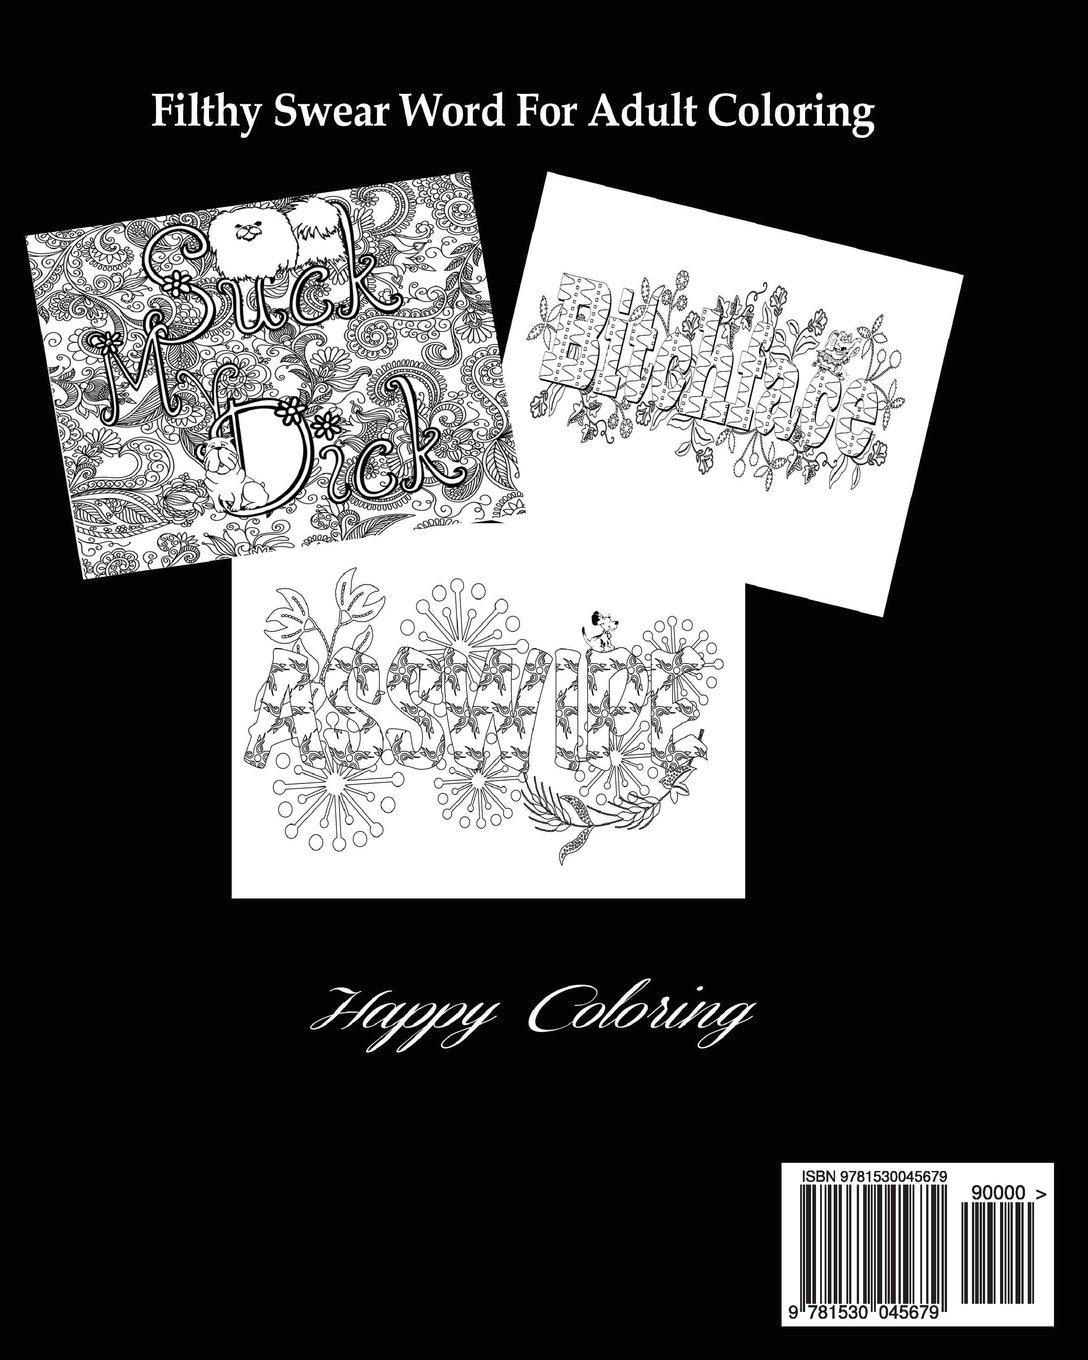 Swear word coloring book volume 1 - Sweary Word Fuck This Shit Adult Coloring Book Stress Relieving Filthy Swear Word For Adult Coloring Vol 2 Coloring Book For Adult 9781530045679